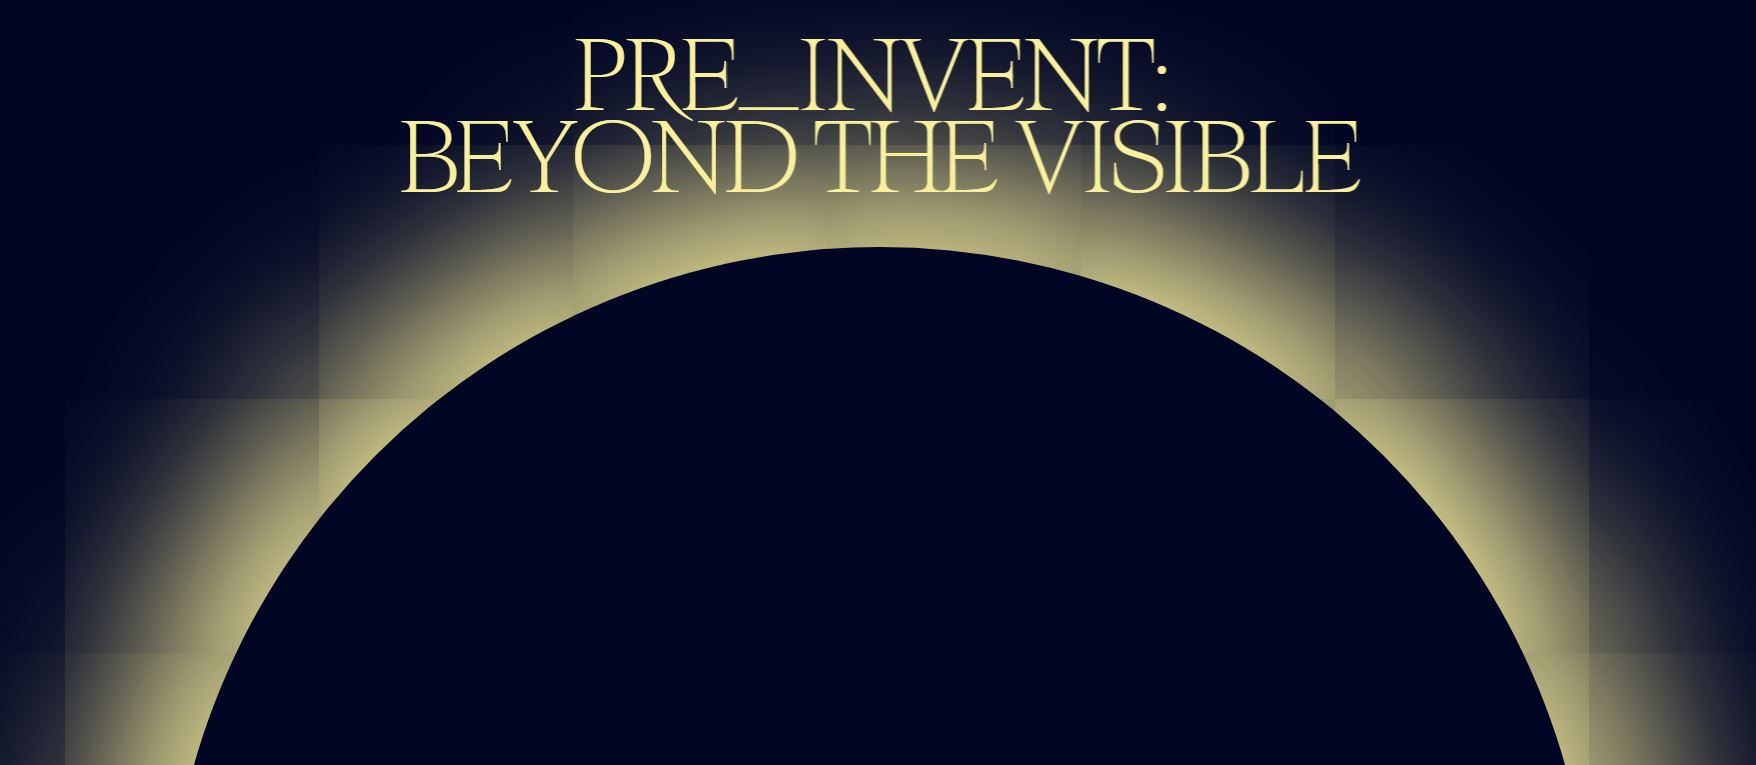 Pre_Invent 2019 - Beyond the Visible